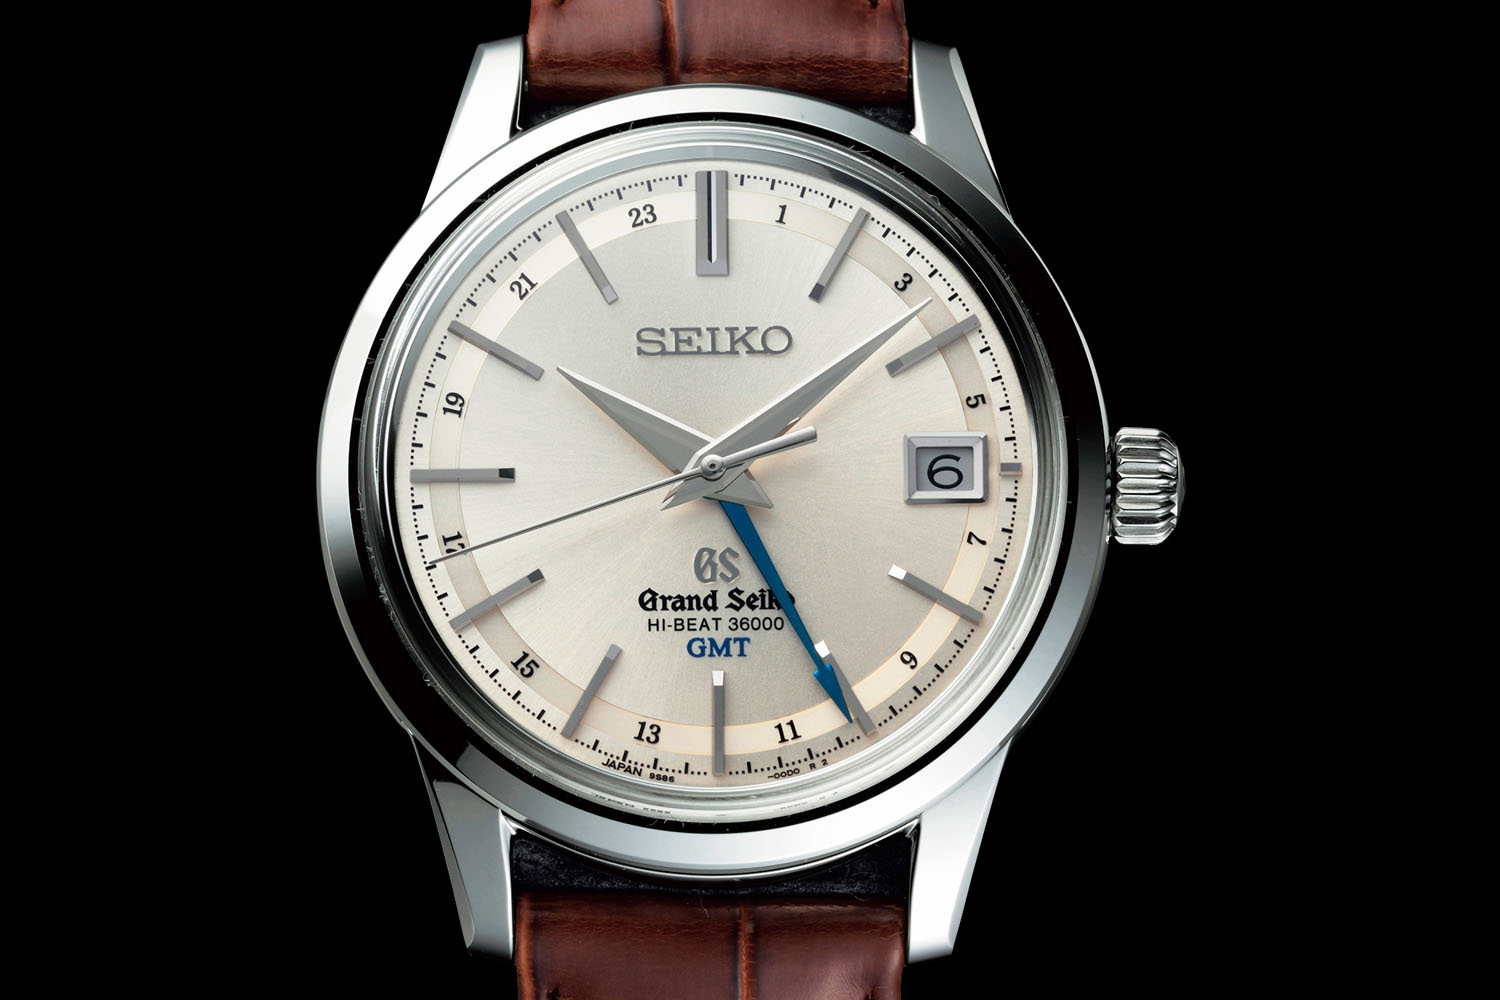 grand seiko hi-beat 36000 gmt sbgj017